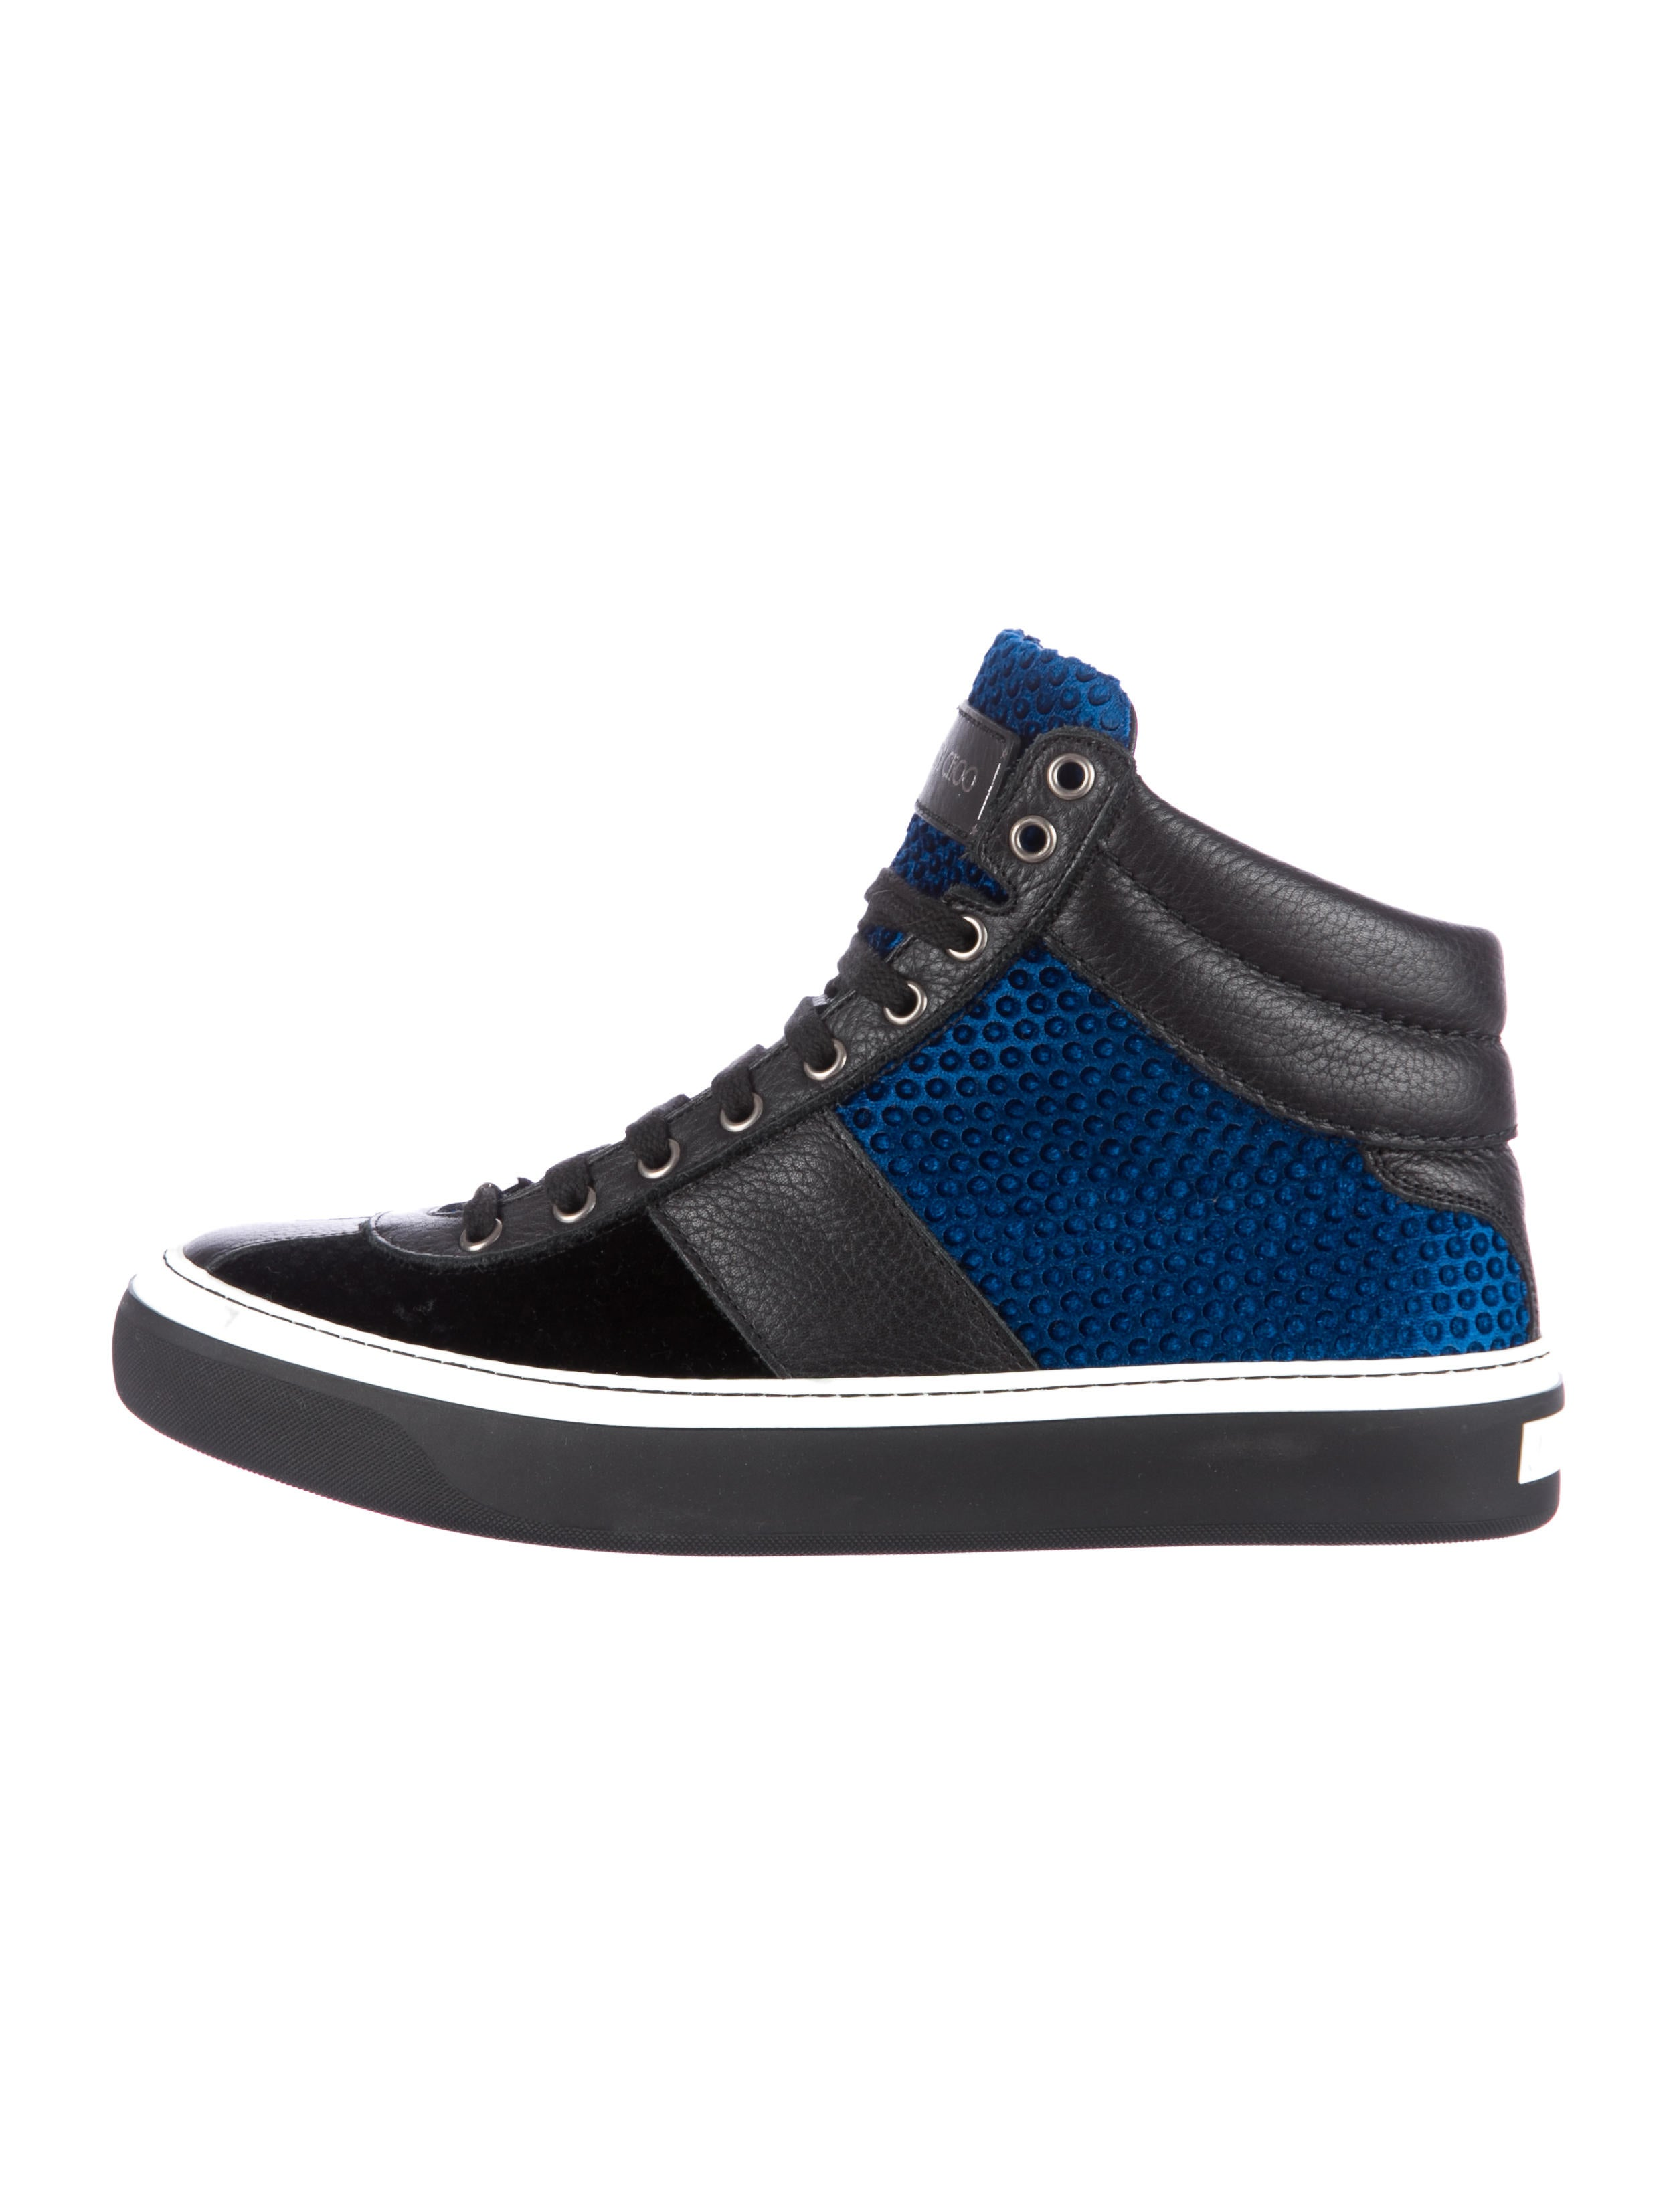 jimmy choo high top sneakers mens shoes jim32149 the realreal. Black Bedroom Furniture Sets. Home Design Ideas